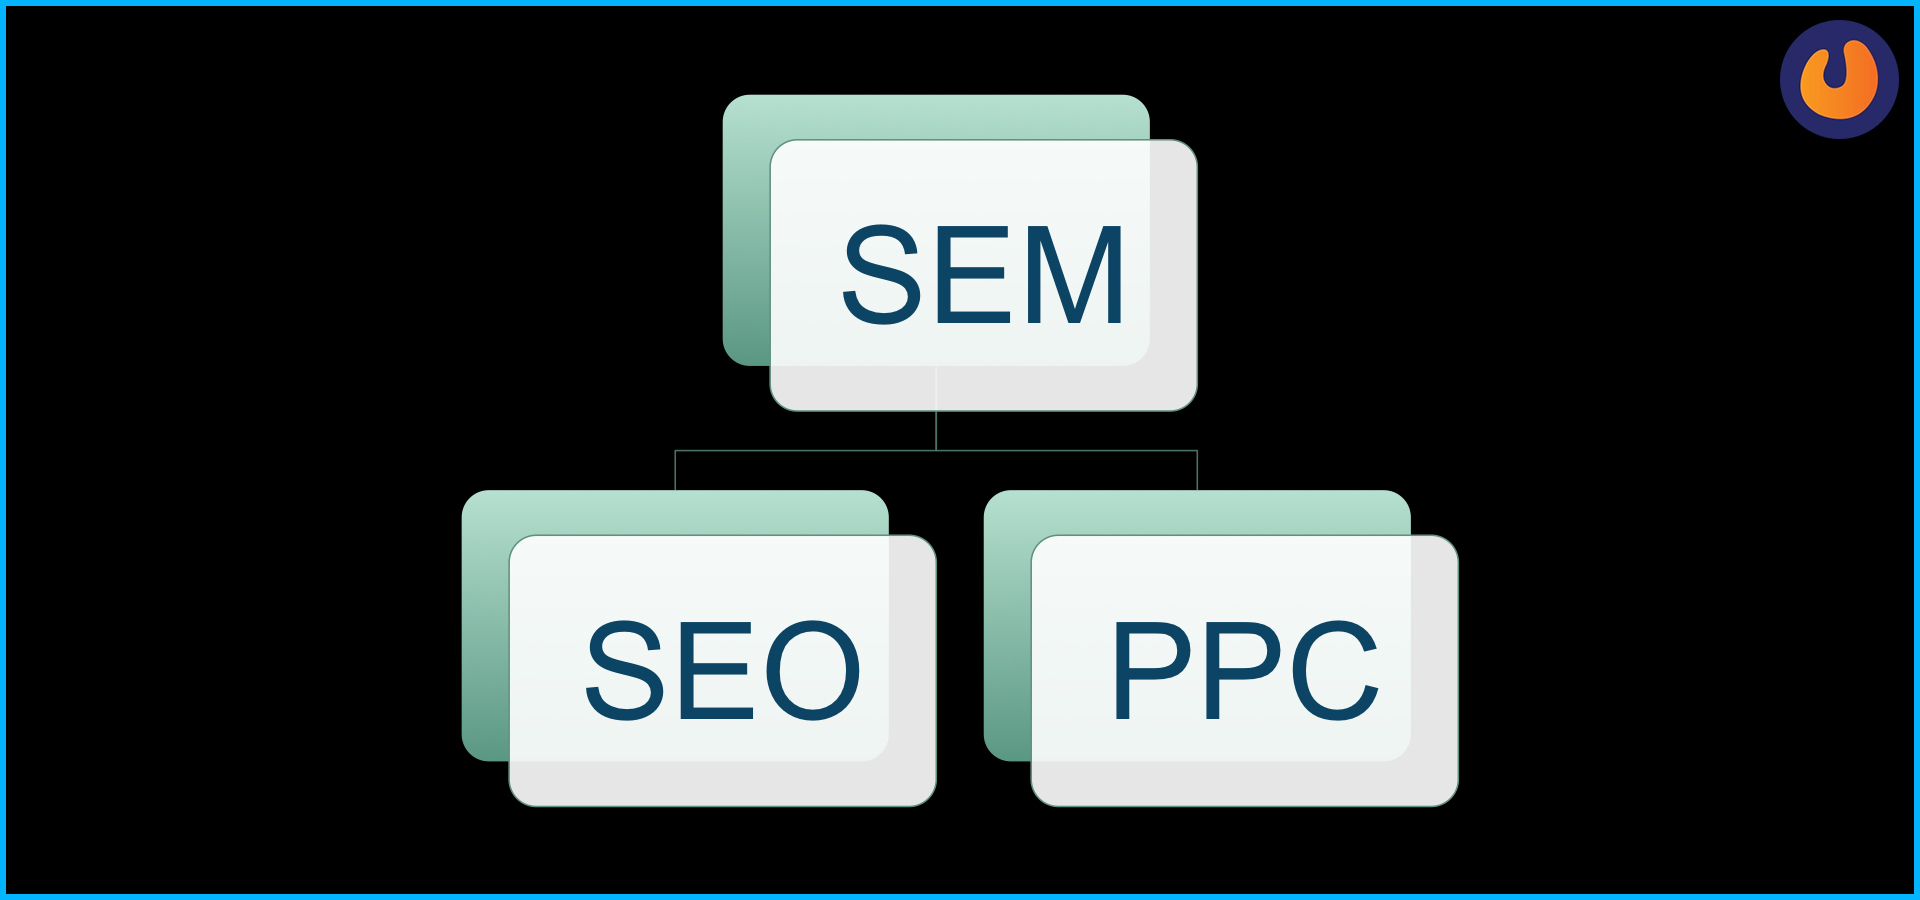 difference between SEO, SEM, and PPC